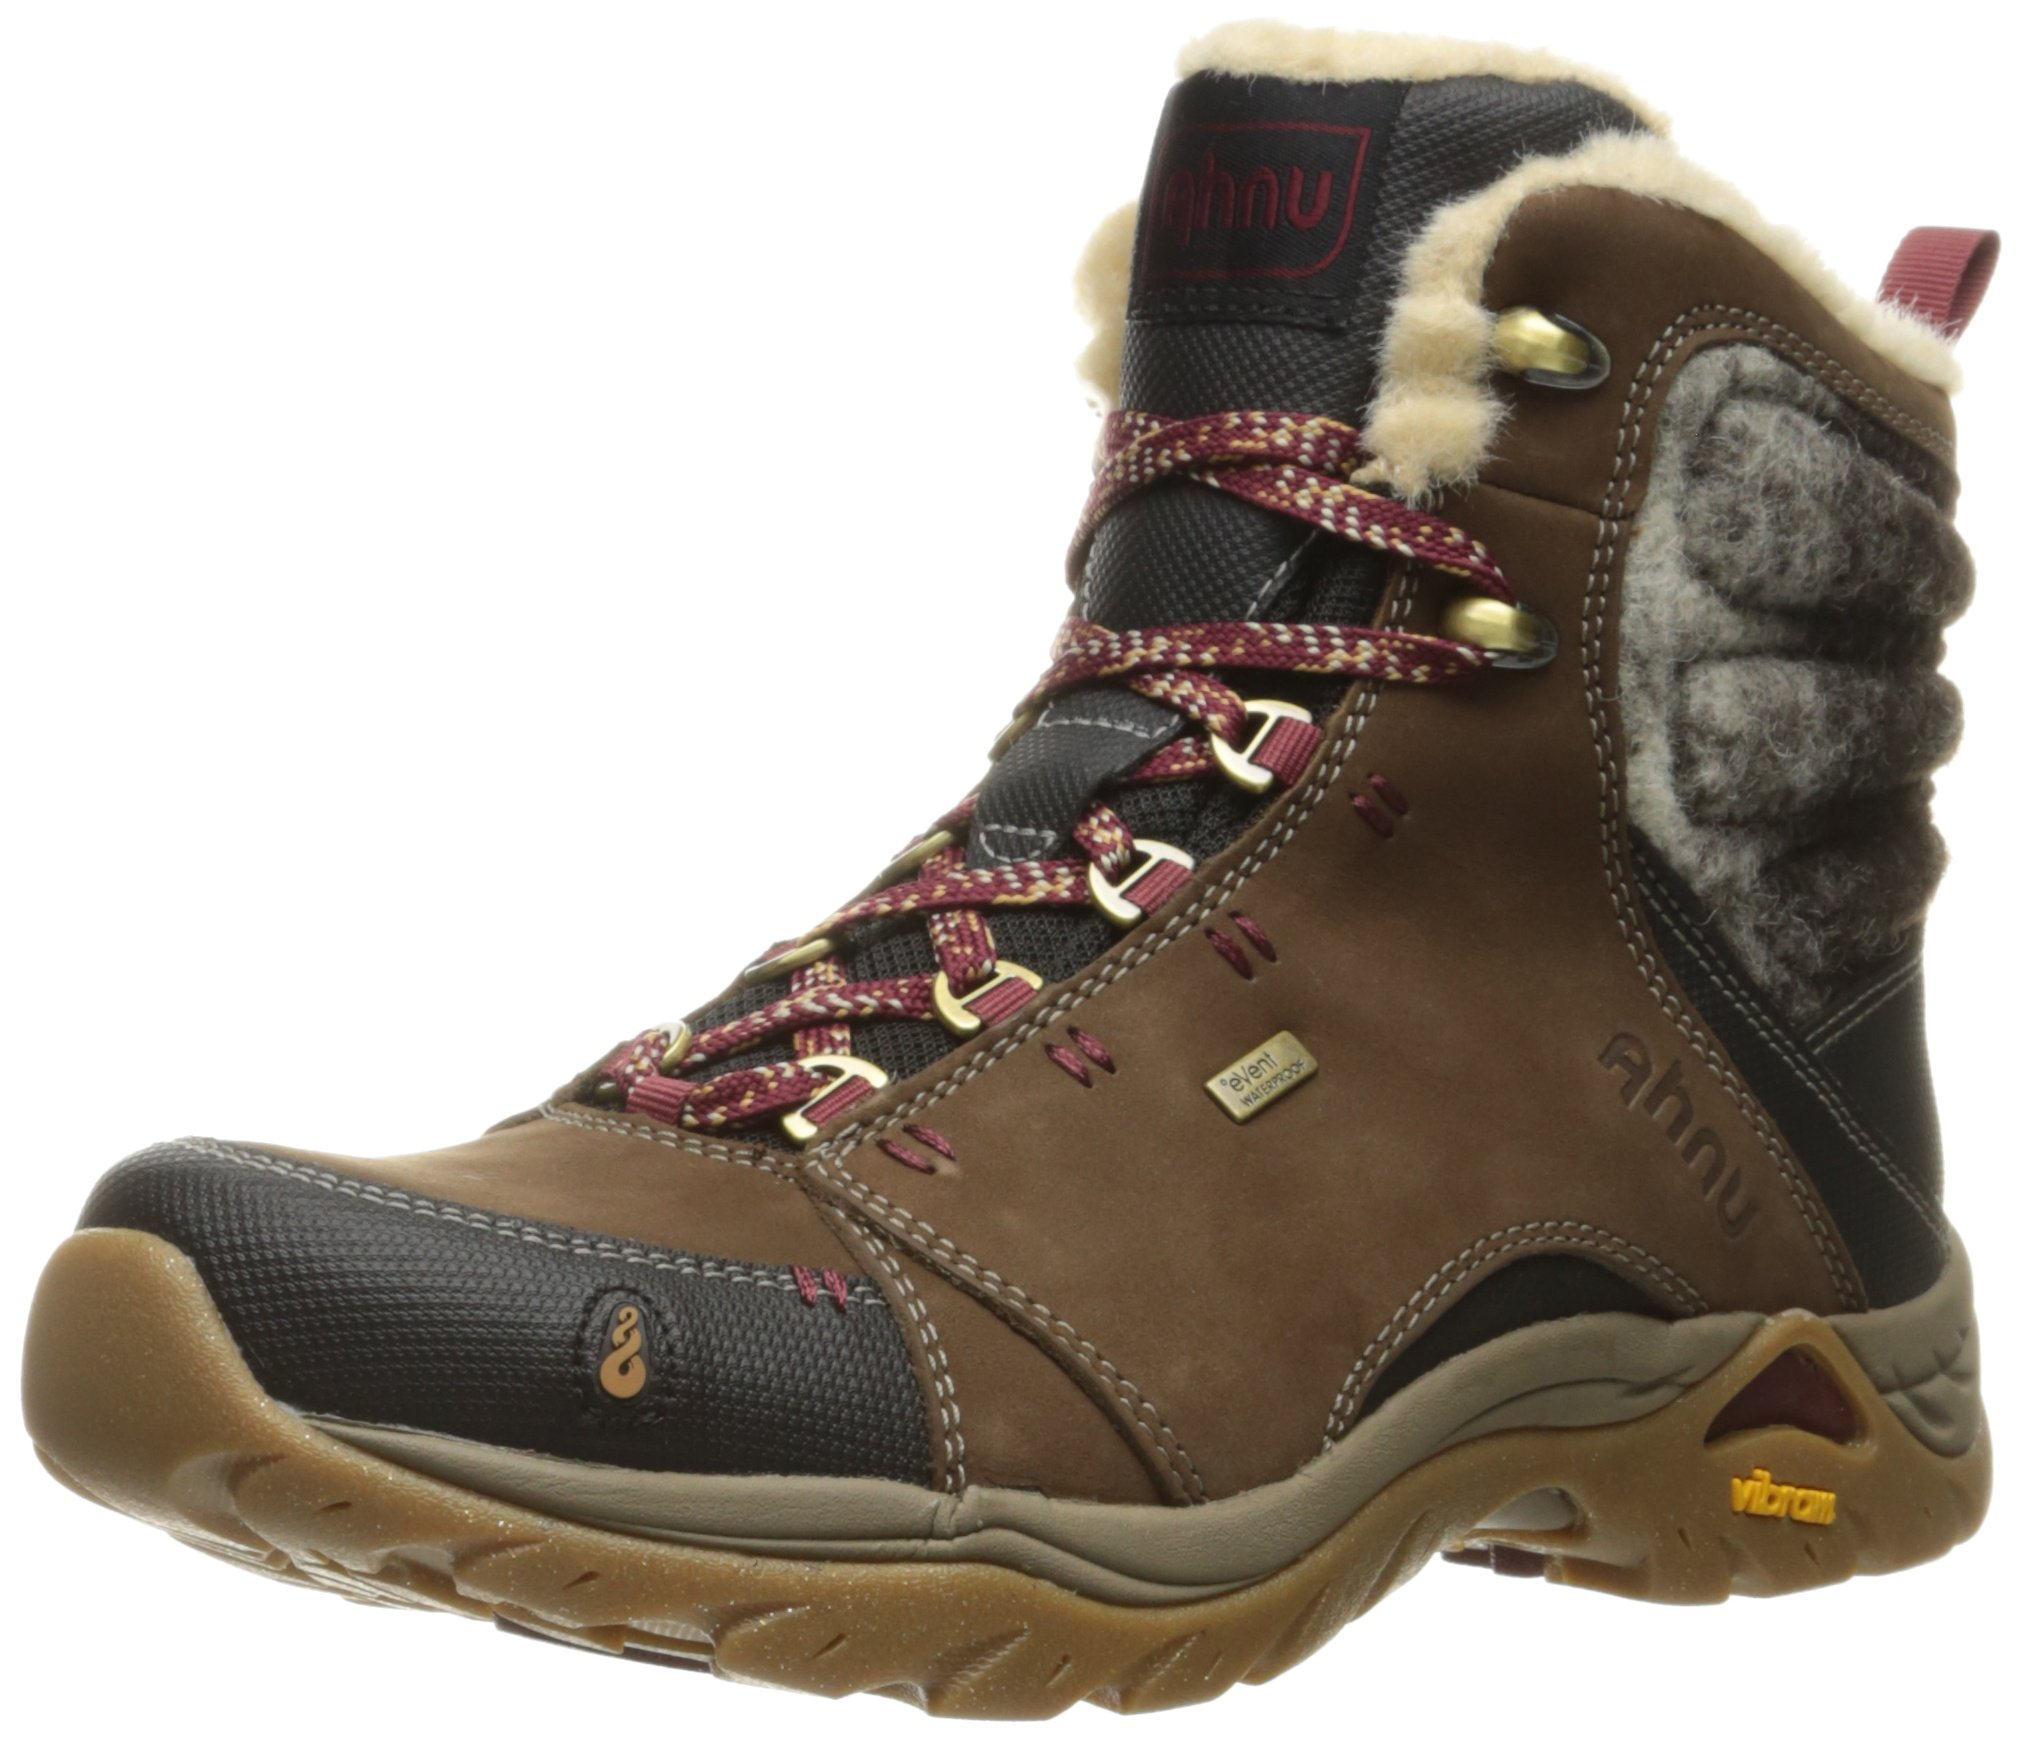 Ahnu Women's Montara Waterproof Boot,Corduroy,9 M US by Ahnu (Image #1)